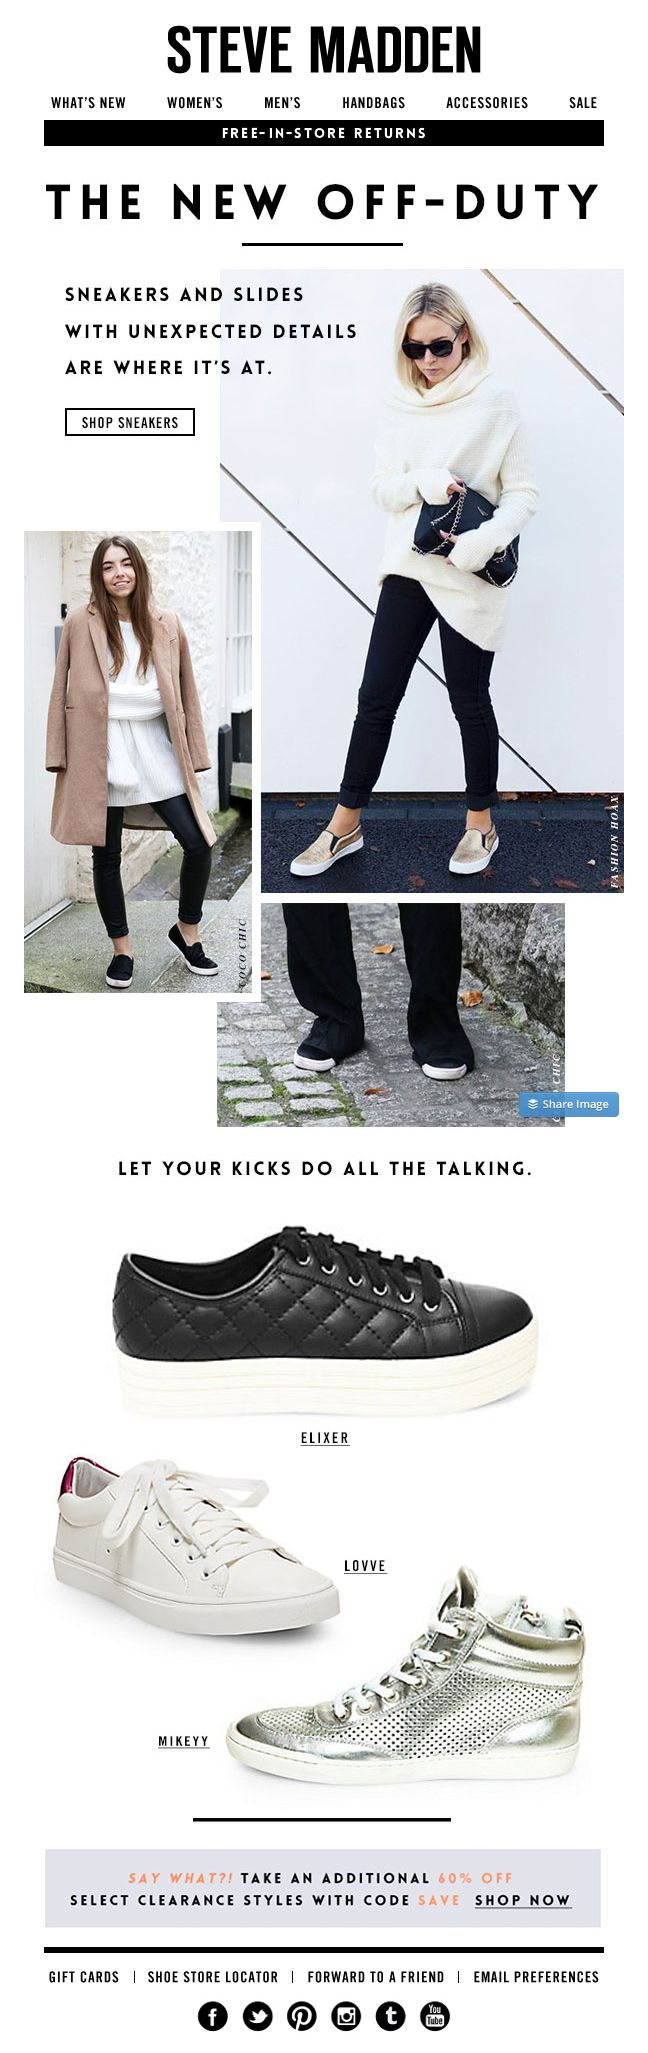 Steve Madden | newsletter | fashion email | fashion design | email | email marketing | email inspiration | e-mail